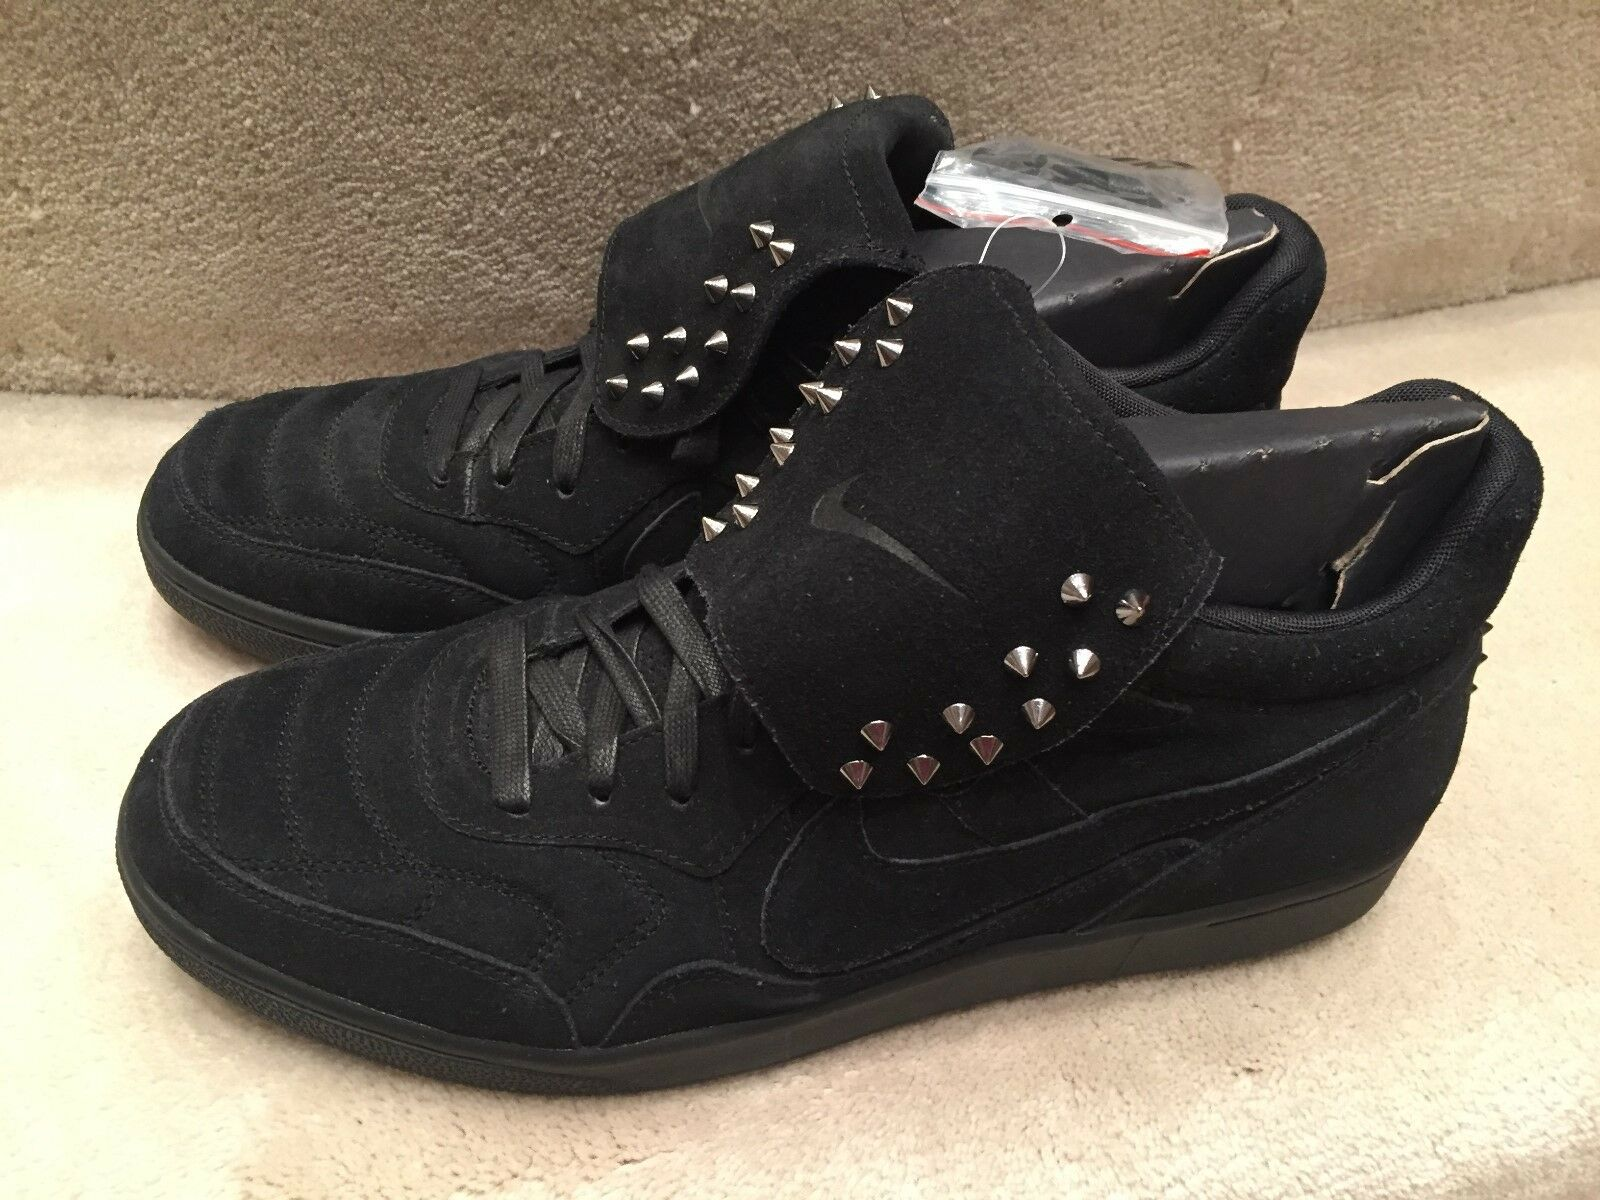 NIKE NSW TIEMPO '94 MID SP 645330 090 BLACK SUEDE STUDS SIZE 12 NEW WITH BOX